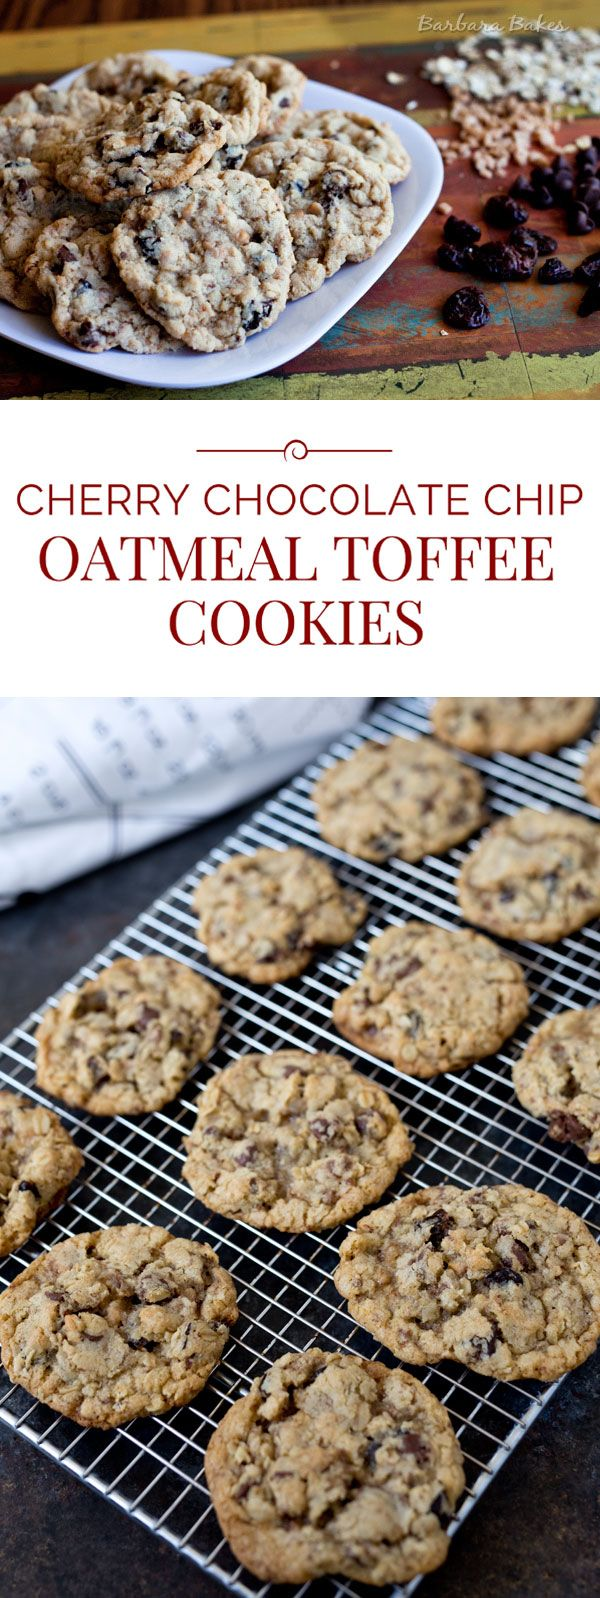 ... Toffee Cookies on Pinterest | Cookies, Toffee and Chocolate chips